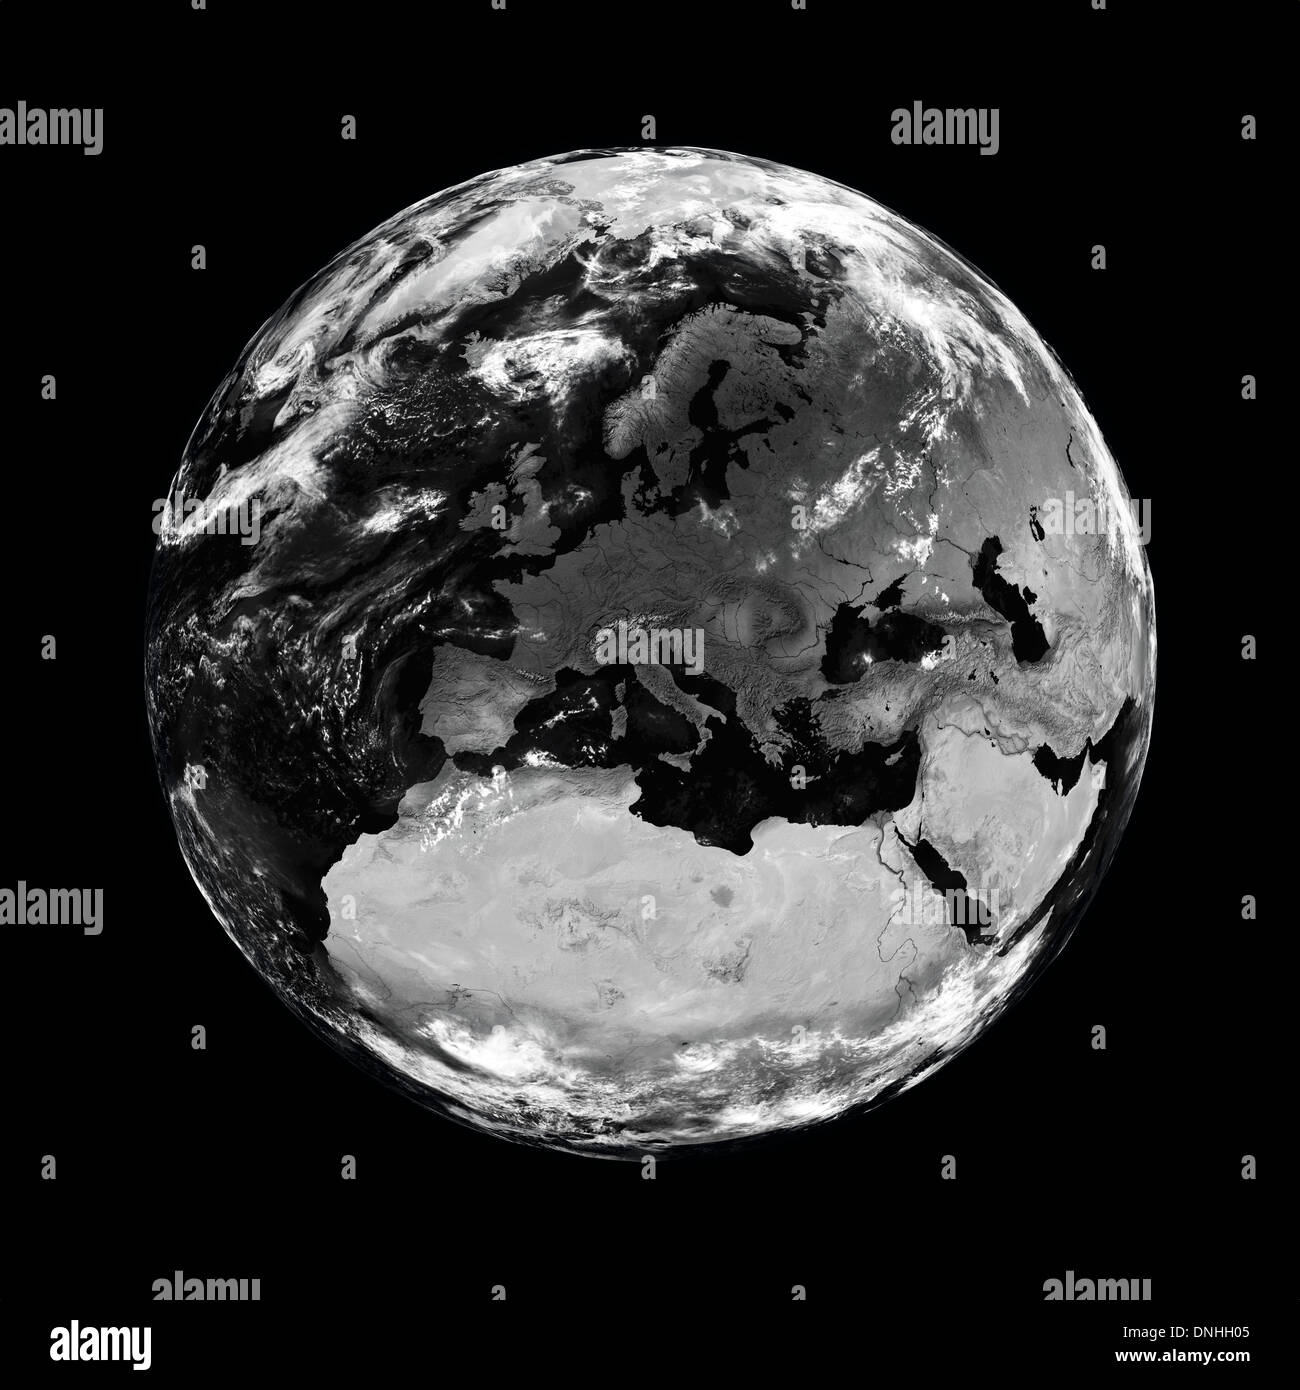 Europe on black planet Earth isolated on black background. Elements of this image furnished by NASA. - Stock Image